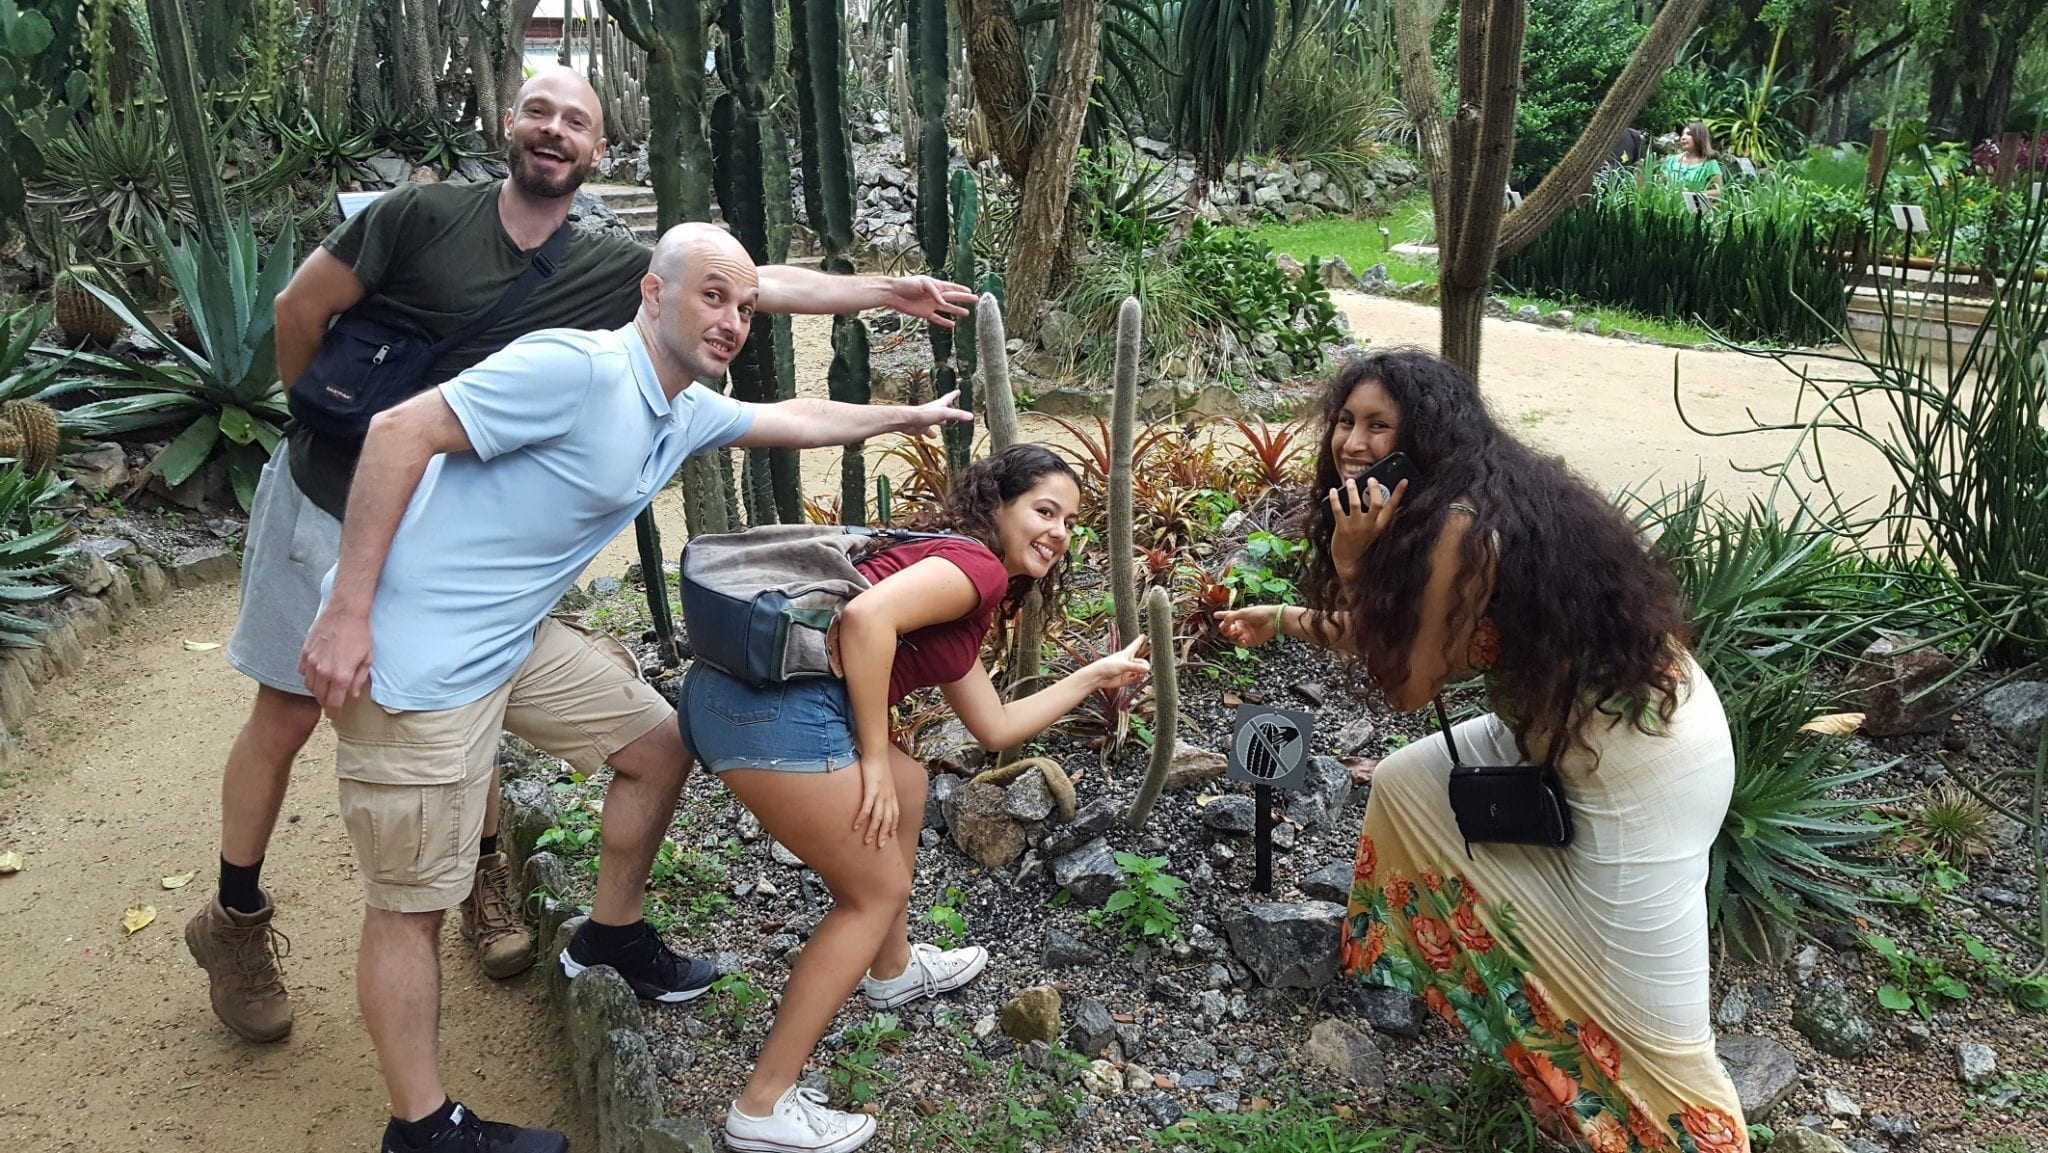 Students pretending to touch a cactus at the Botanical garden in Rio de Janeiro